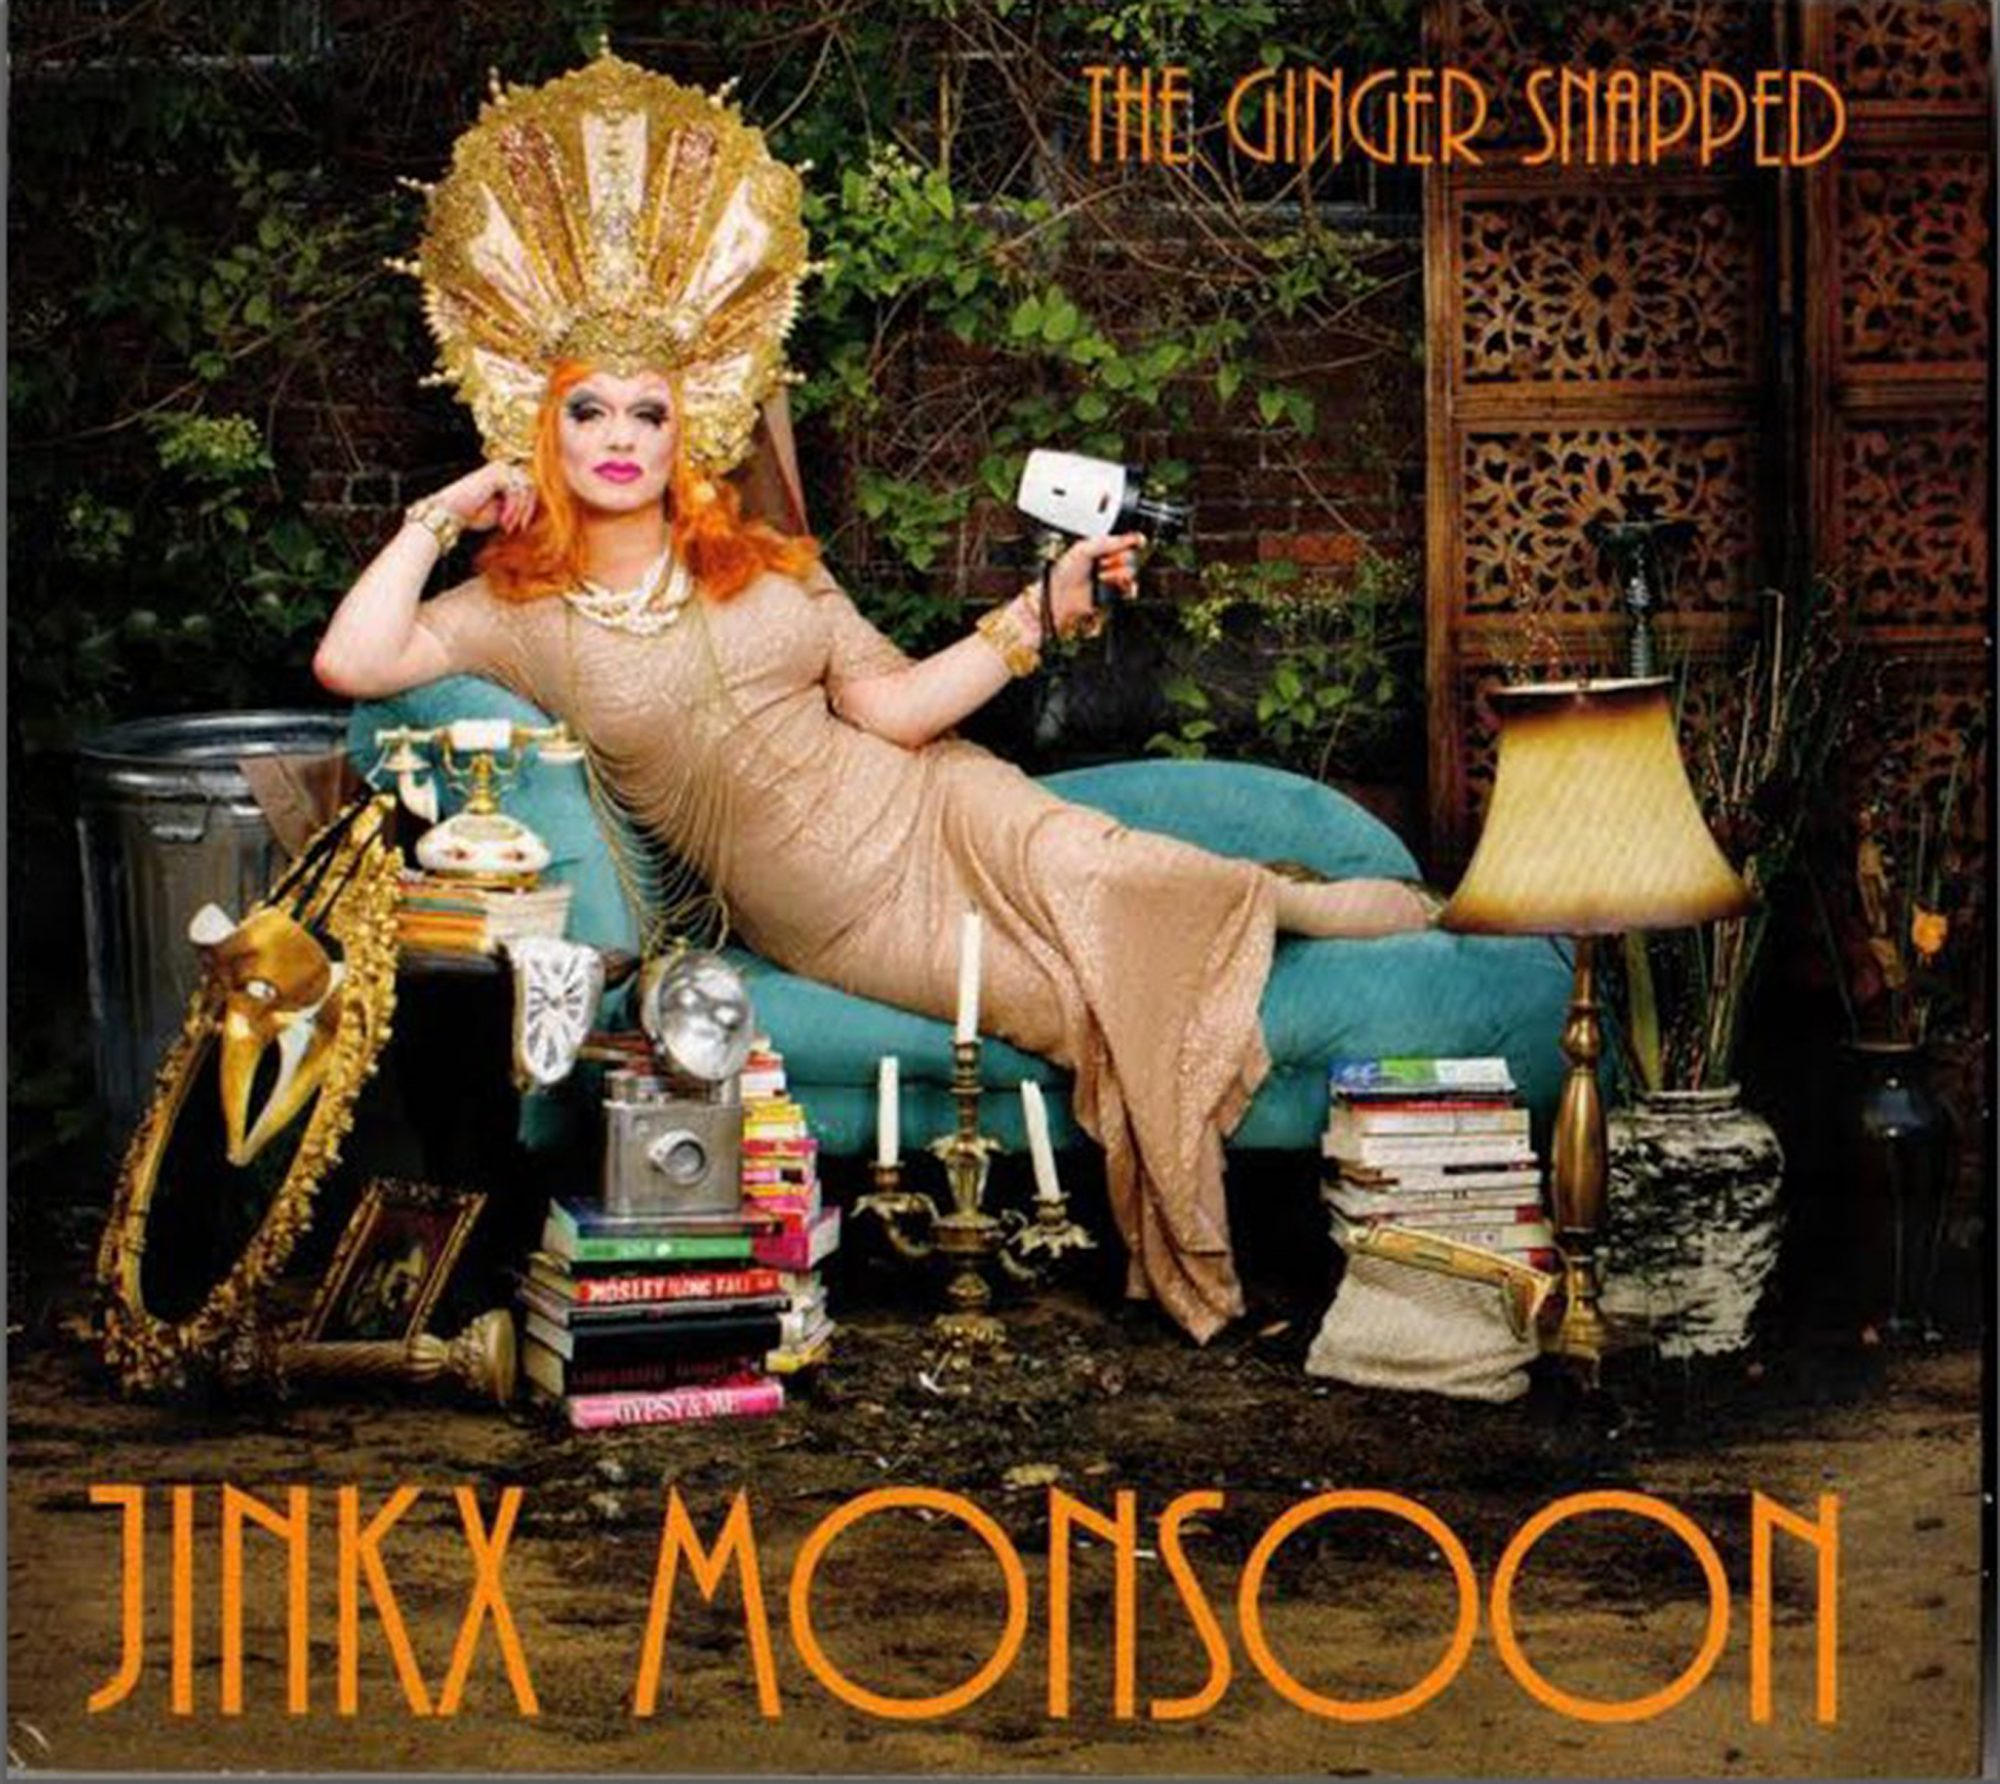 Jinkx Monsoon Ginger Snapped